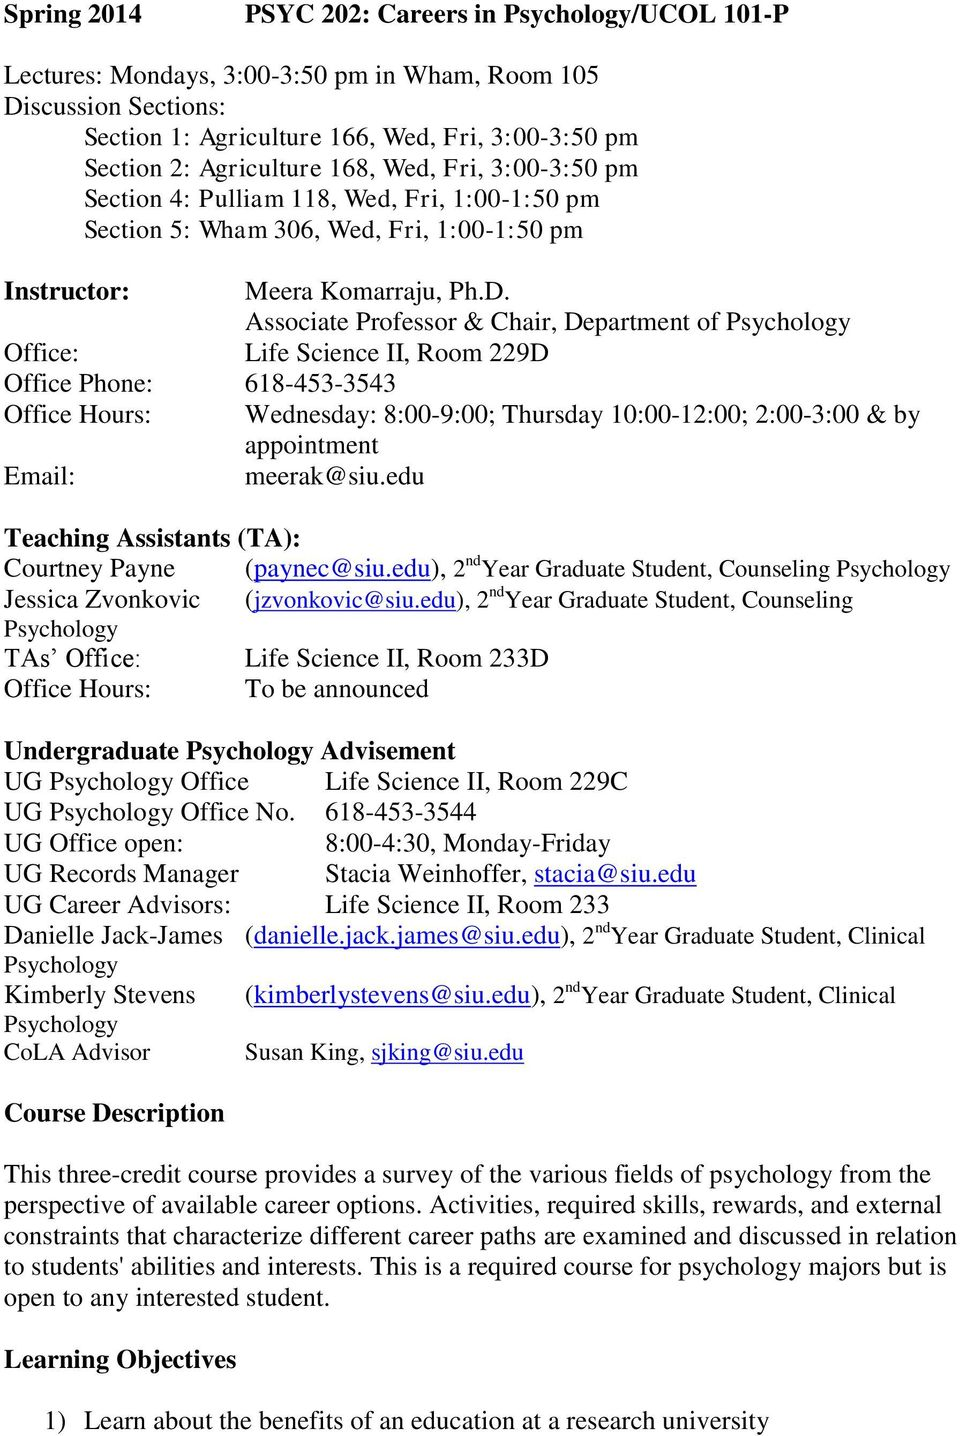 Associate Professor & Chair, Department of Office: Life Science II, Room 229D Office Phone: 618-453-3543 Office Hours: Wednesday: 8:00-9:00; Thursday 10:00-12:00; 2:00-3:00 & by appointment Email: